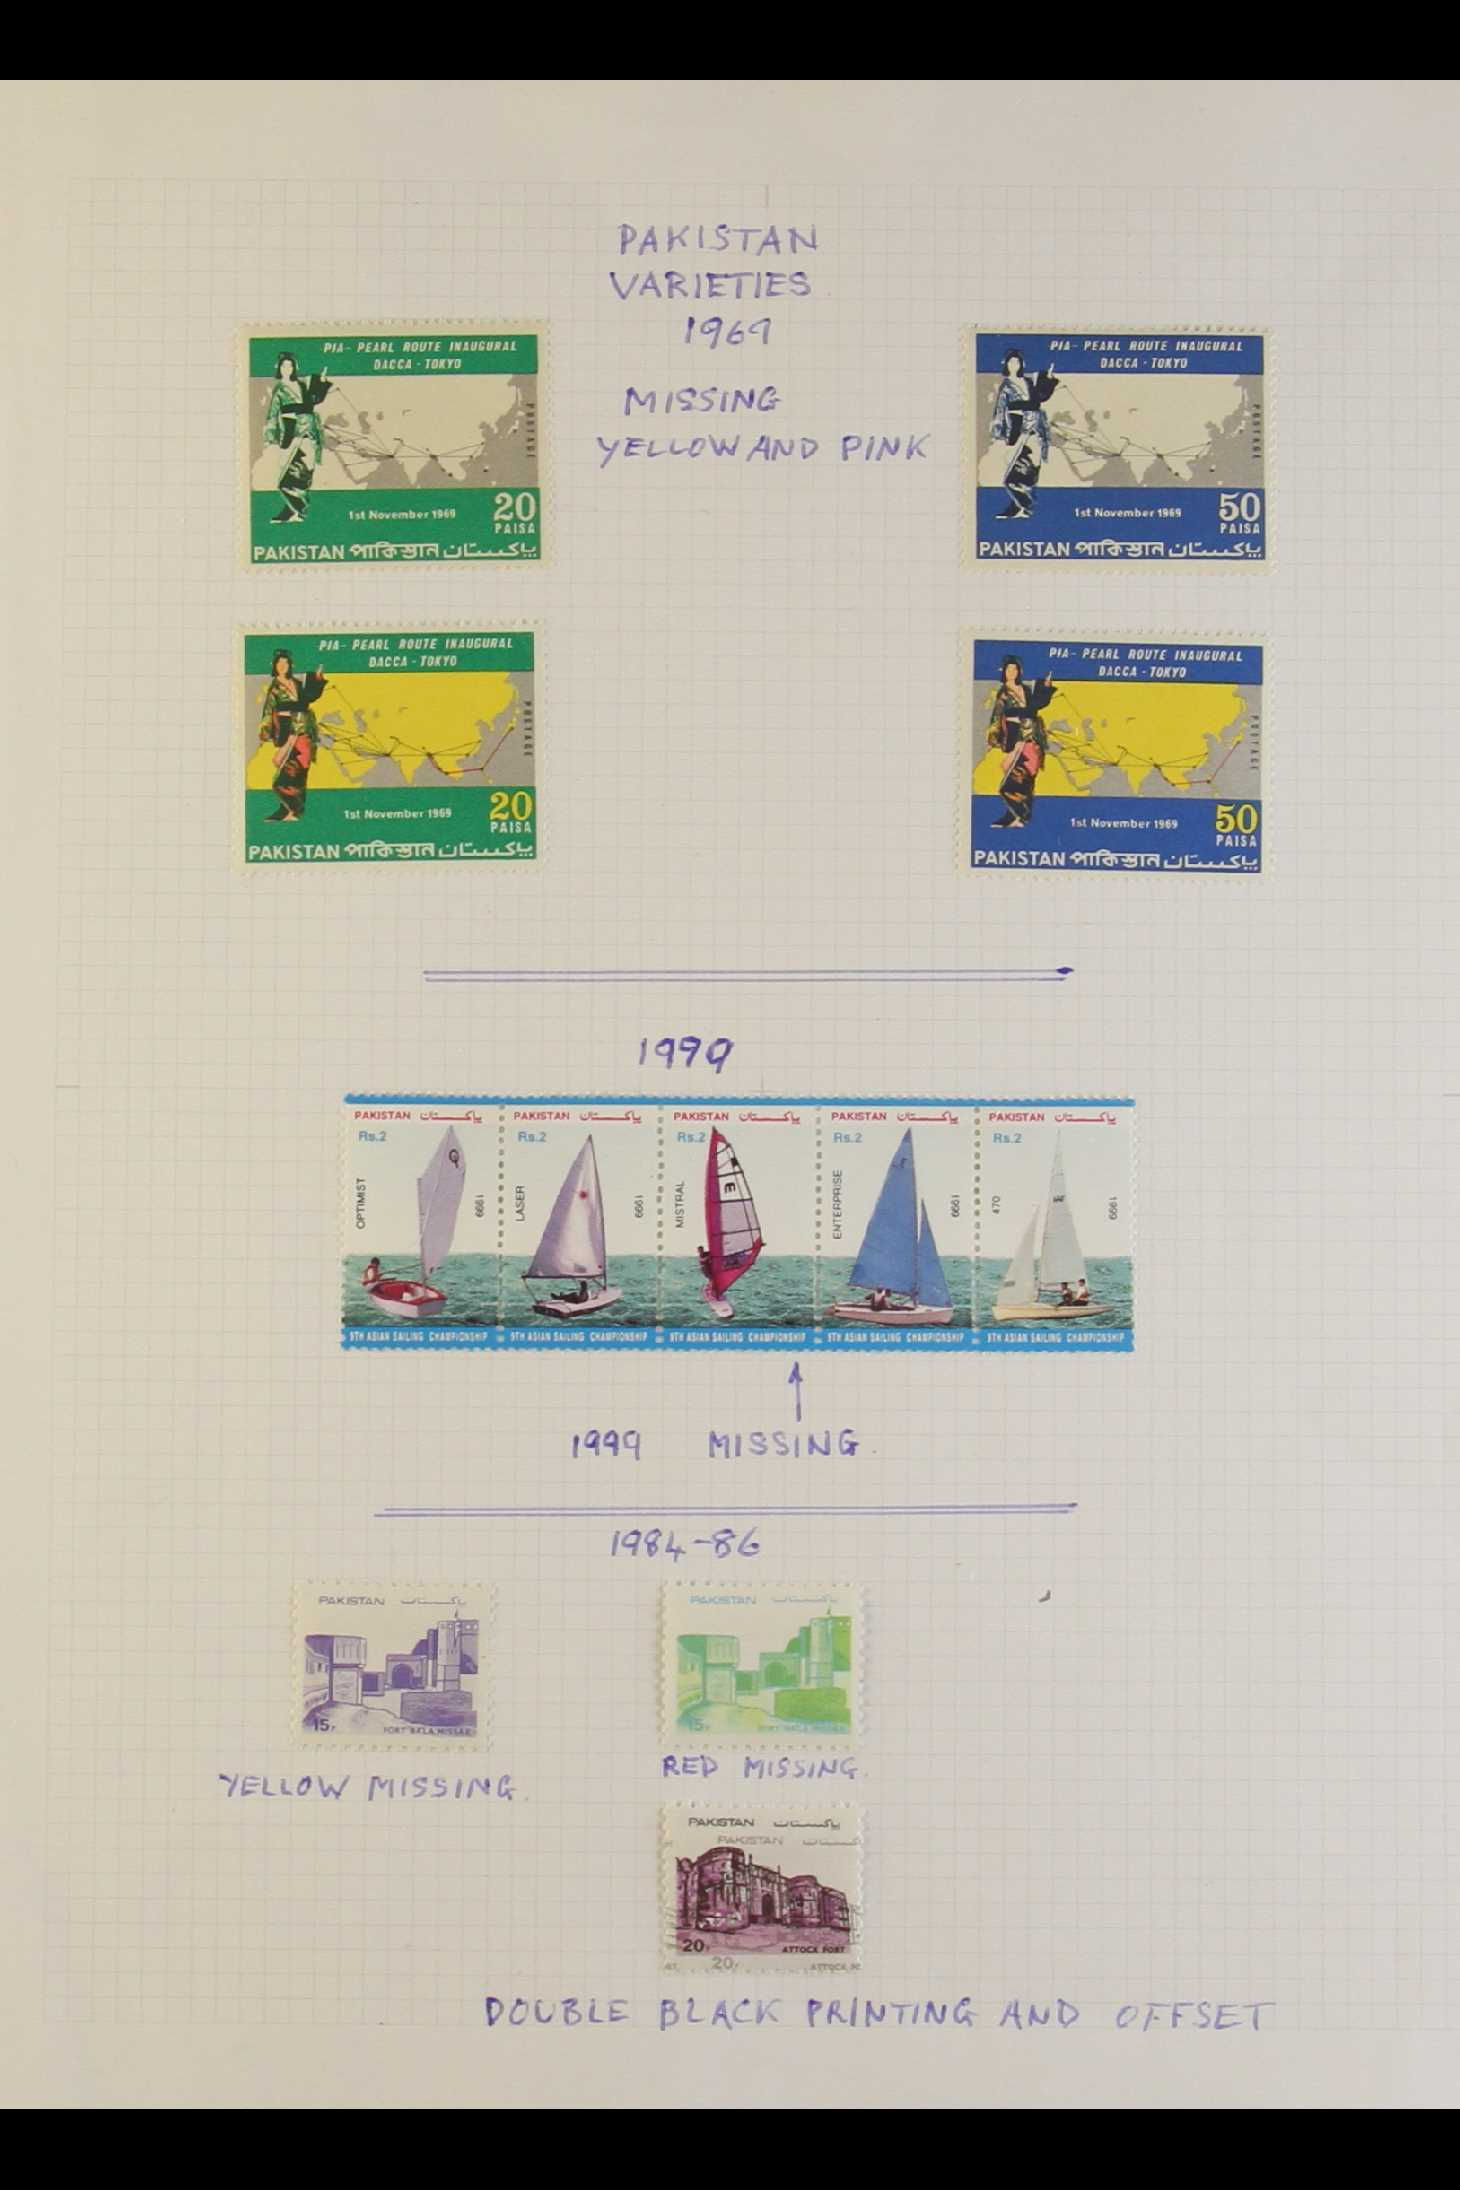 PAKISTAN 1960-2000 VARIETIES COLLECTION mint or nhm incl. 1960 Revolution Day 2a pink OMITTED,